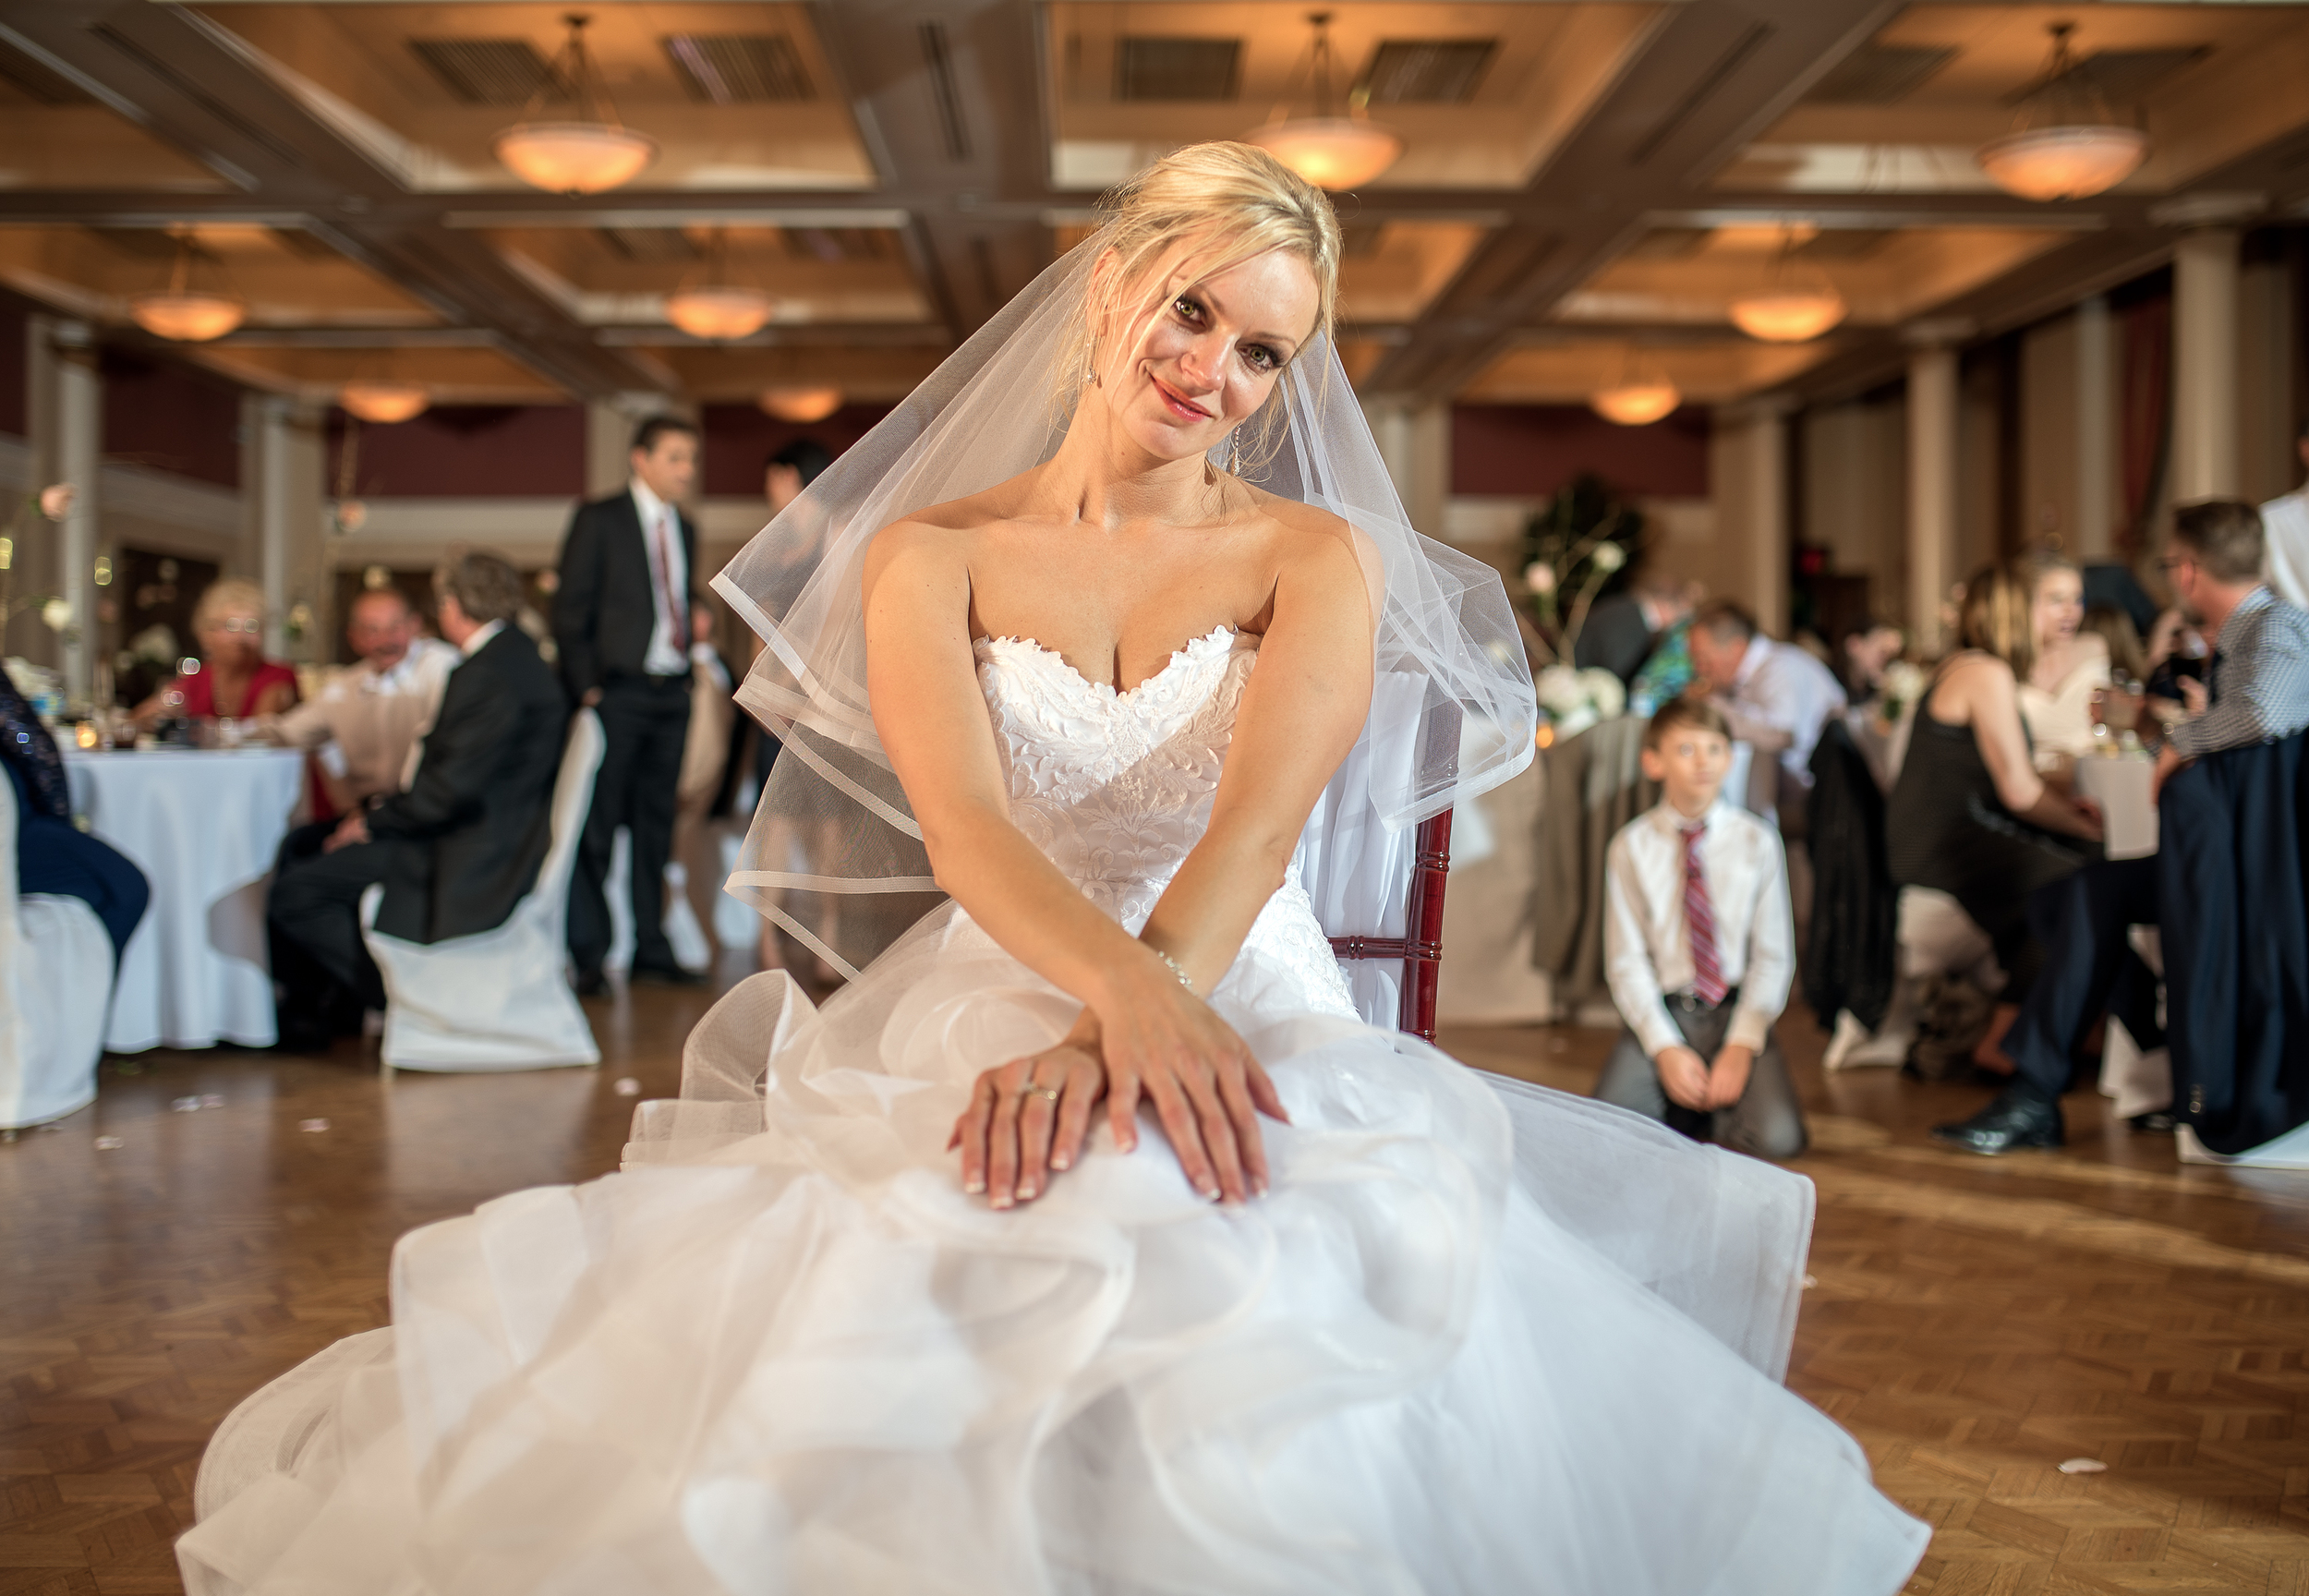 048Koper-Ekiert-Roanoke-Wedding-Virginia-Photographer-mattrossphotography.com.jpg